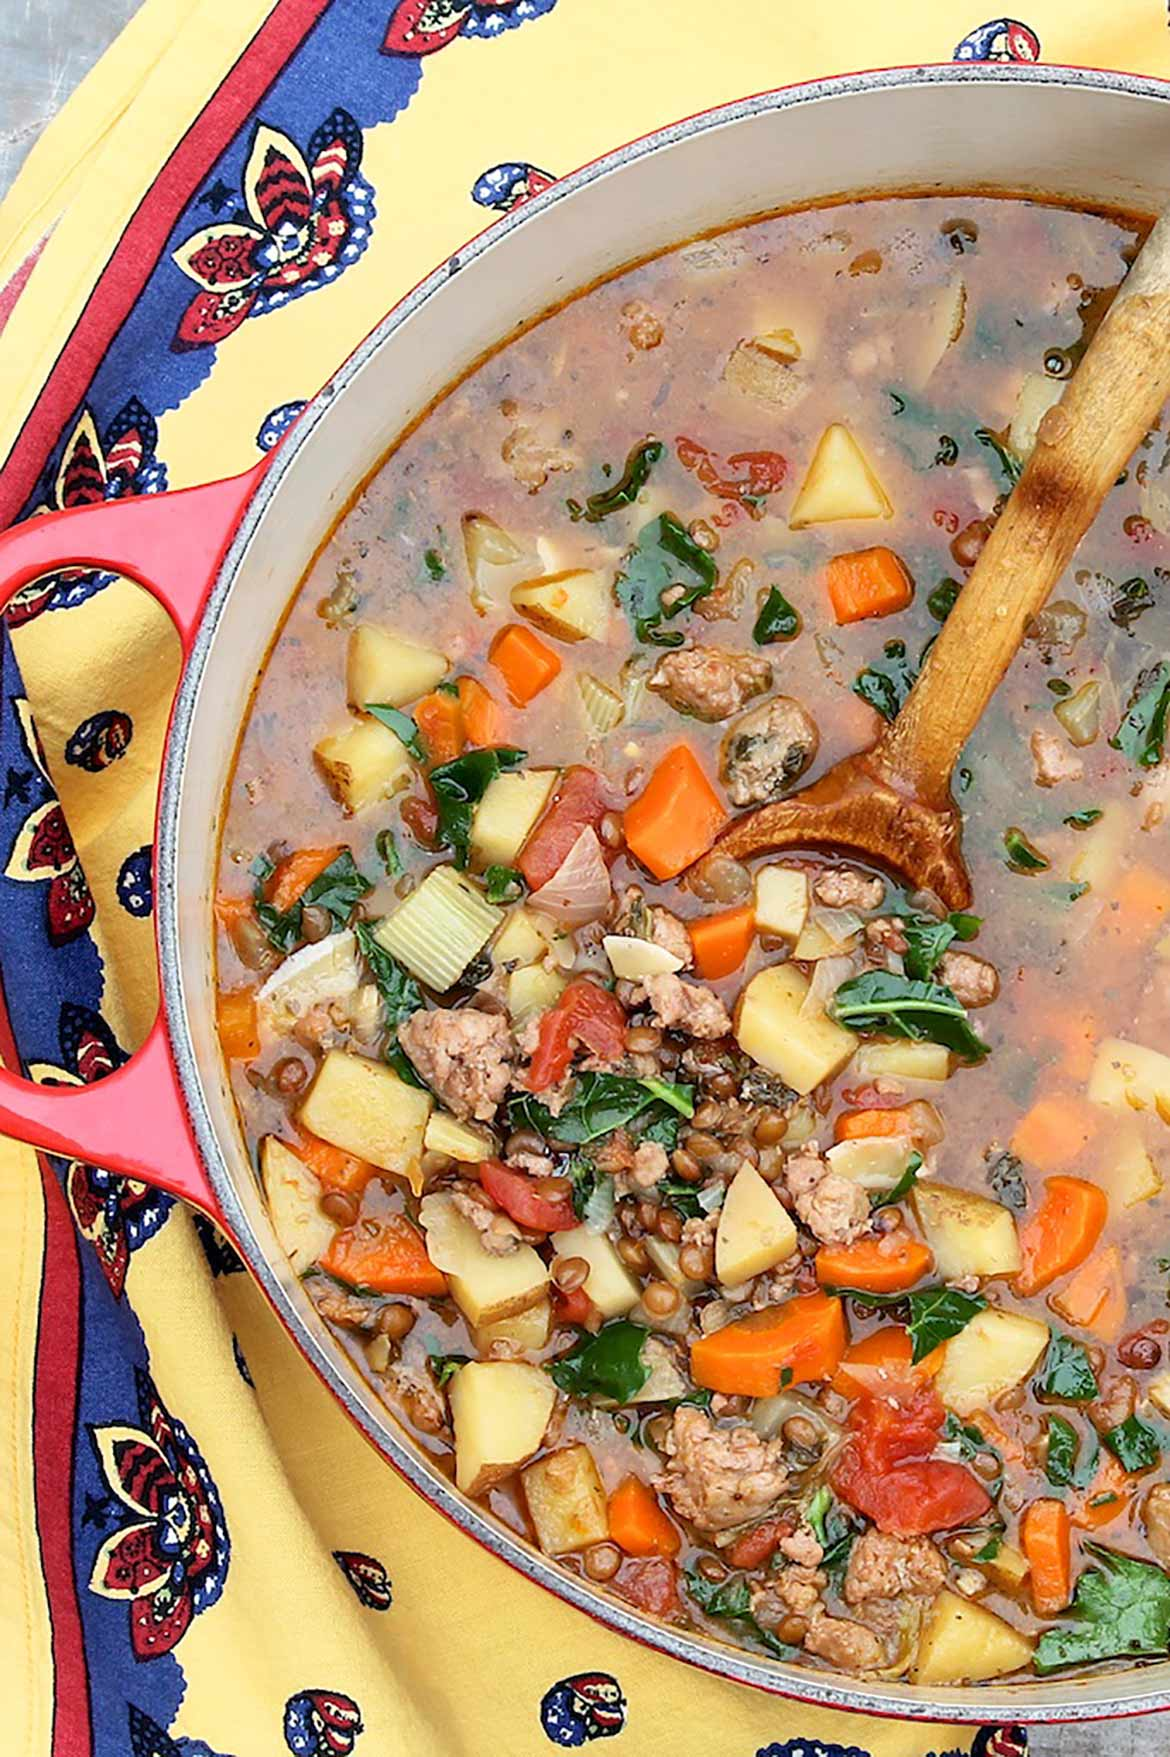 A hint of sausage supplies smoky, savory flavor in this one-pot soup, which is packed with plant-based protein, colorful veggies and satiating appeal. Wholesome comfort food at its best-and a customer favorite at a regional restaurant chain!